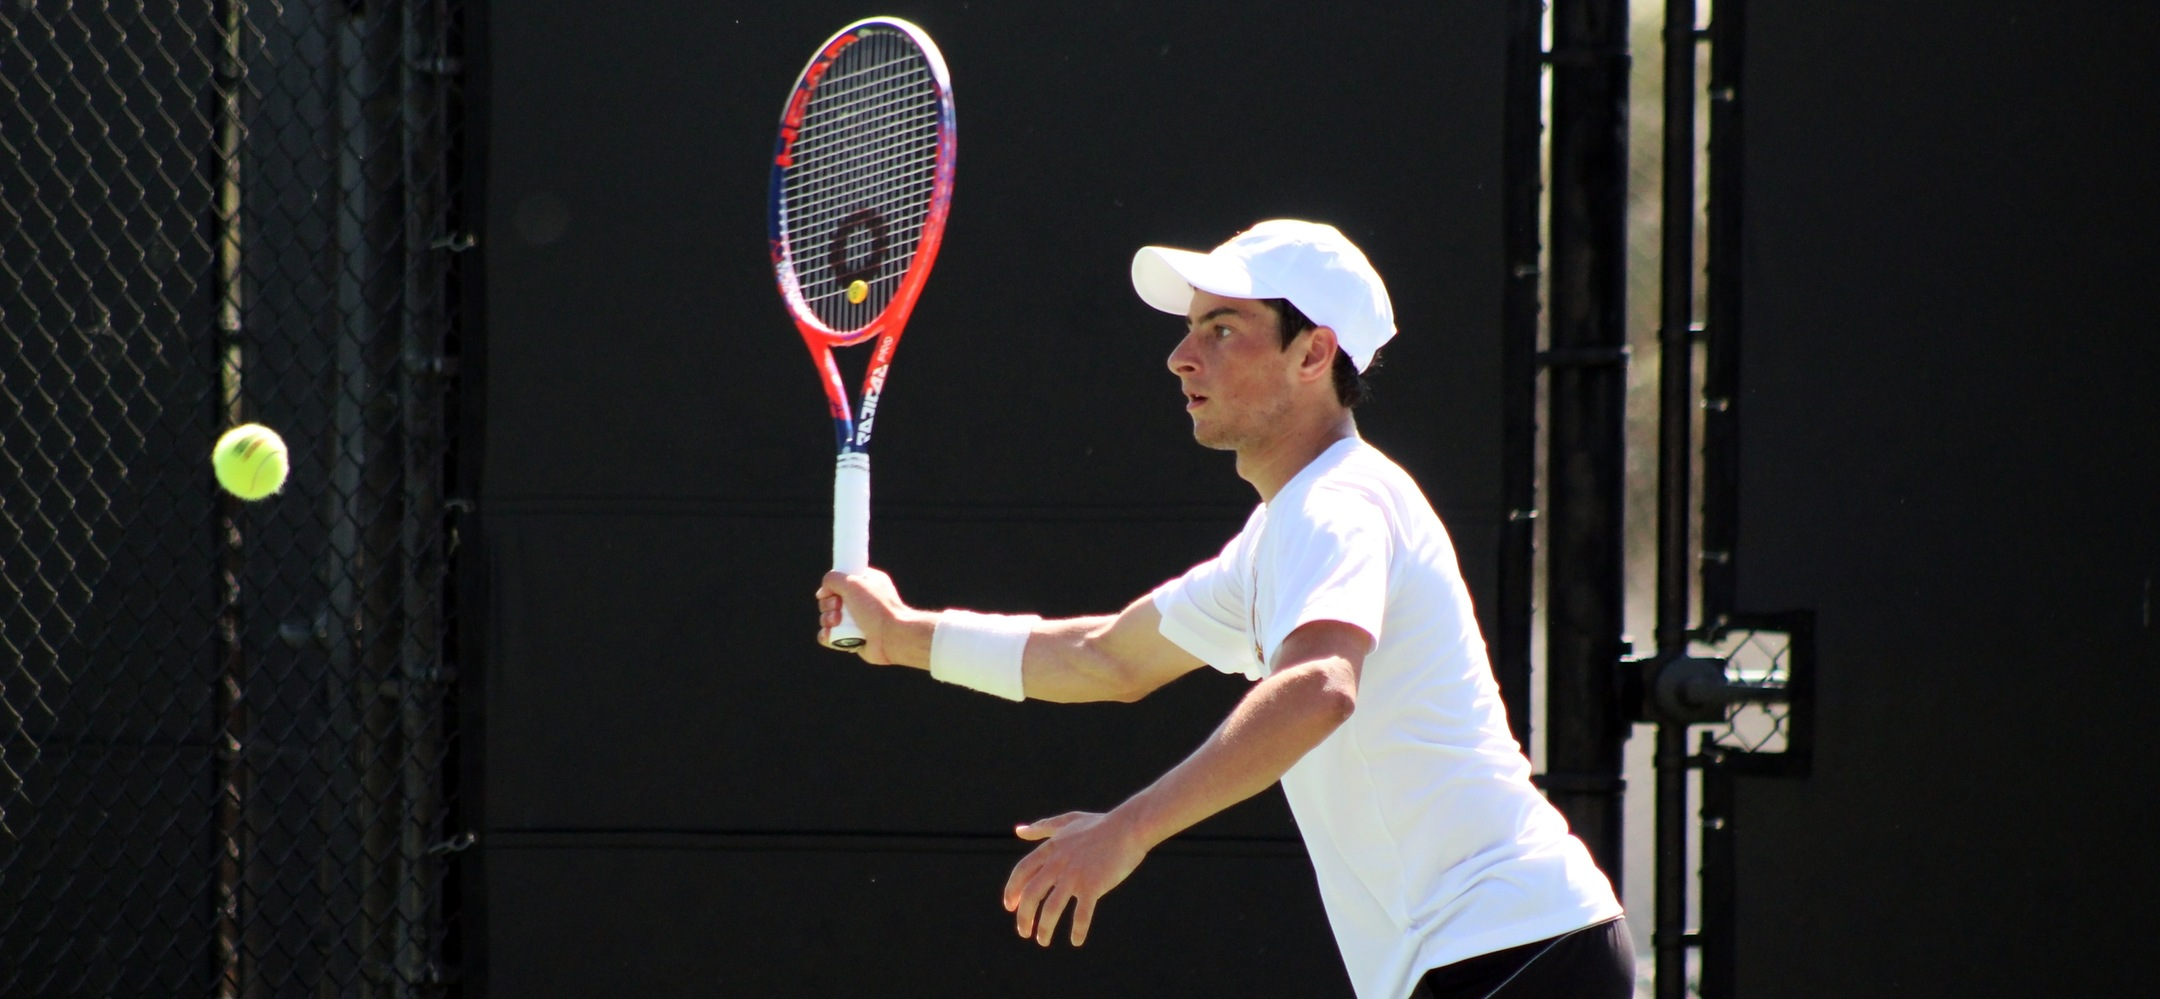 Jack Katzman will compete tomorrow in the ITA singles finals and the doubles semifinals